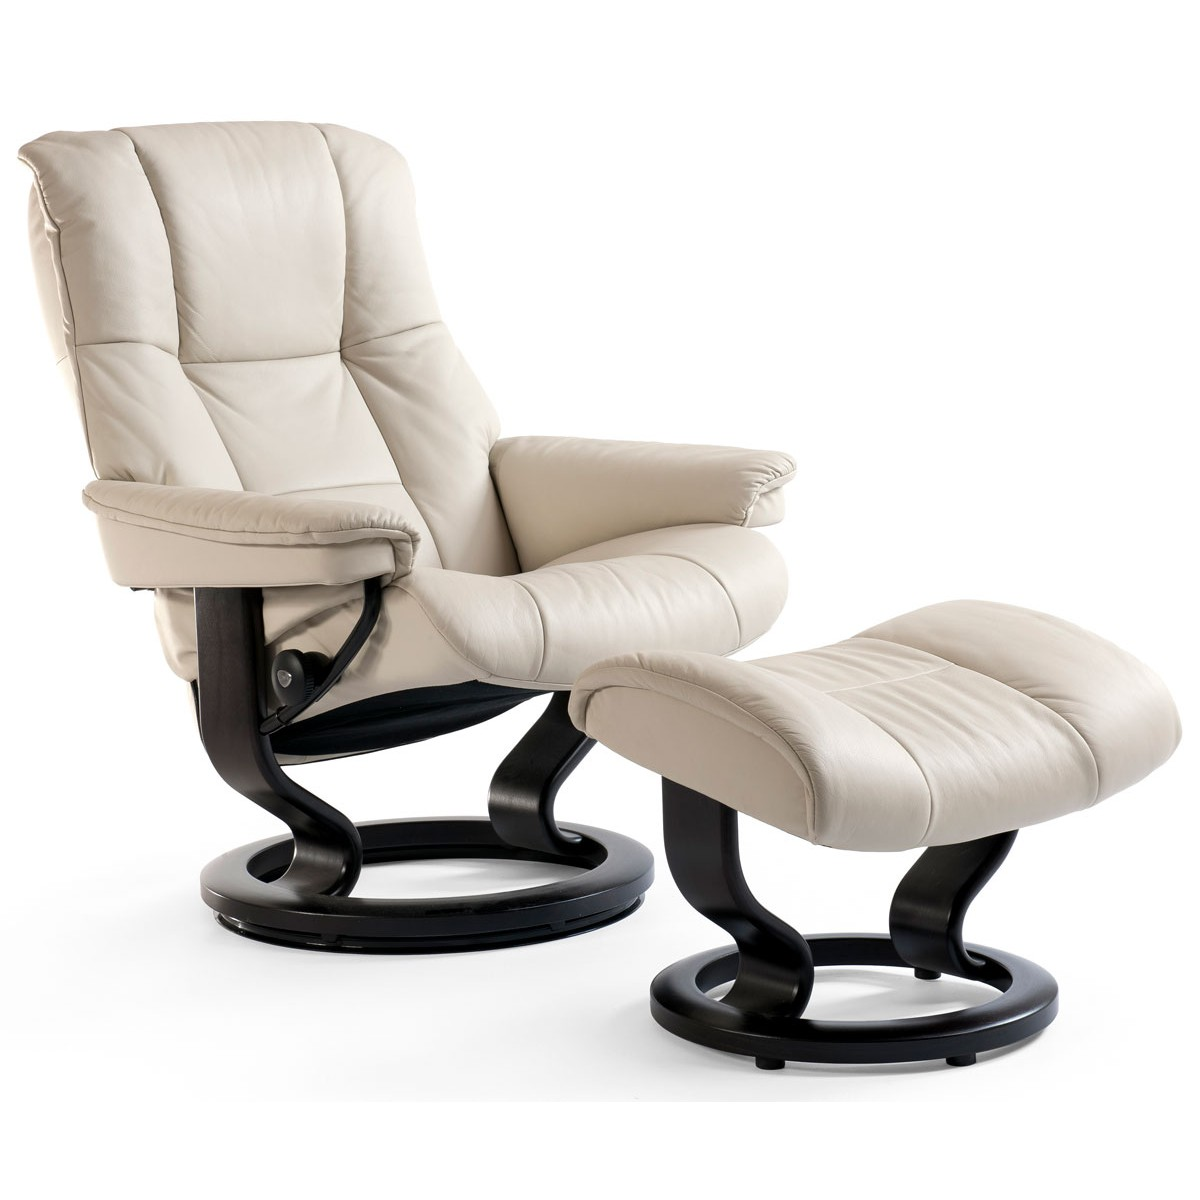 large by swivel classic base ekornes products chair recliner with stressless magic and reclining number item ottoman